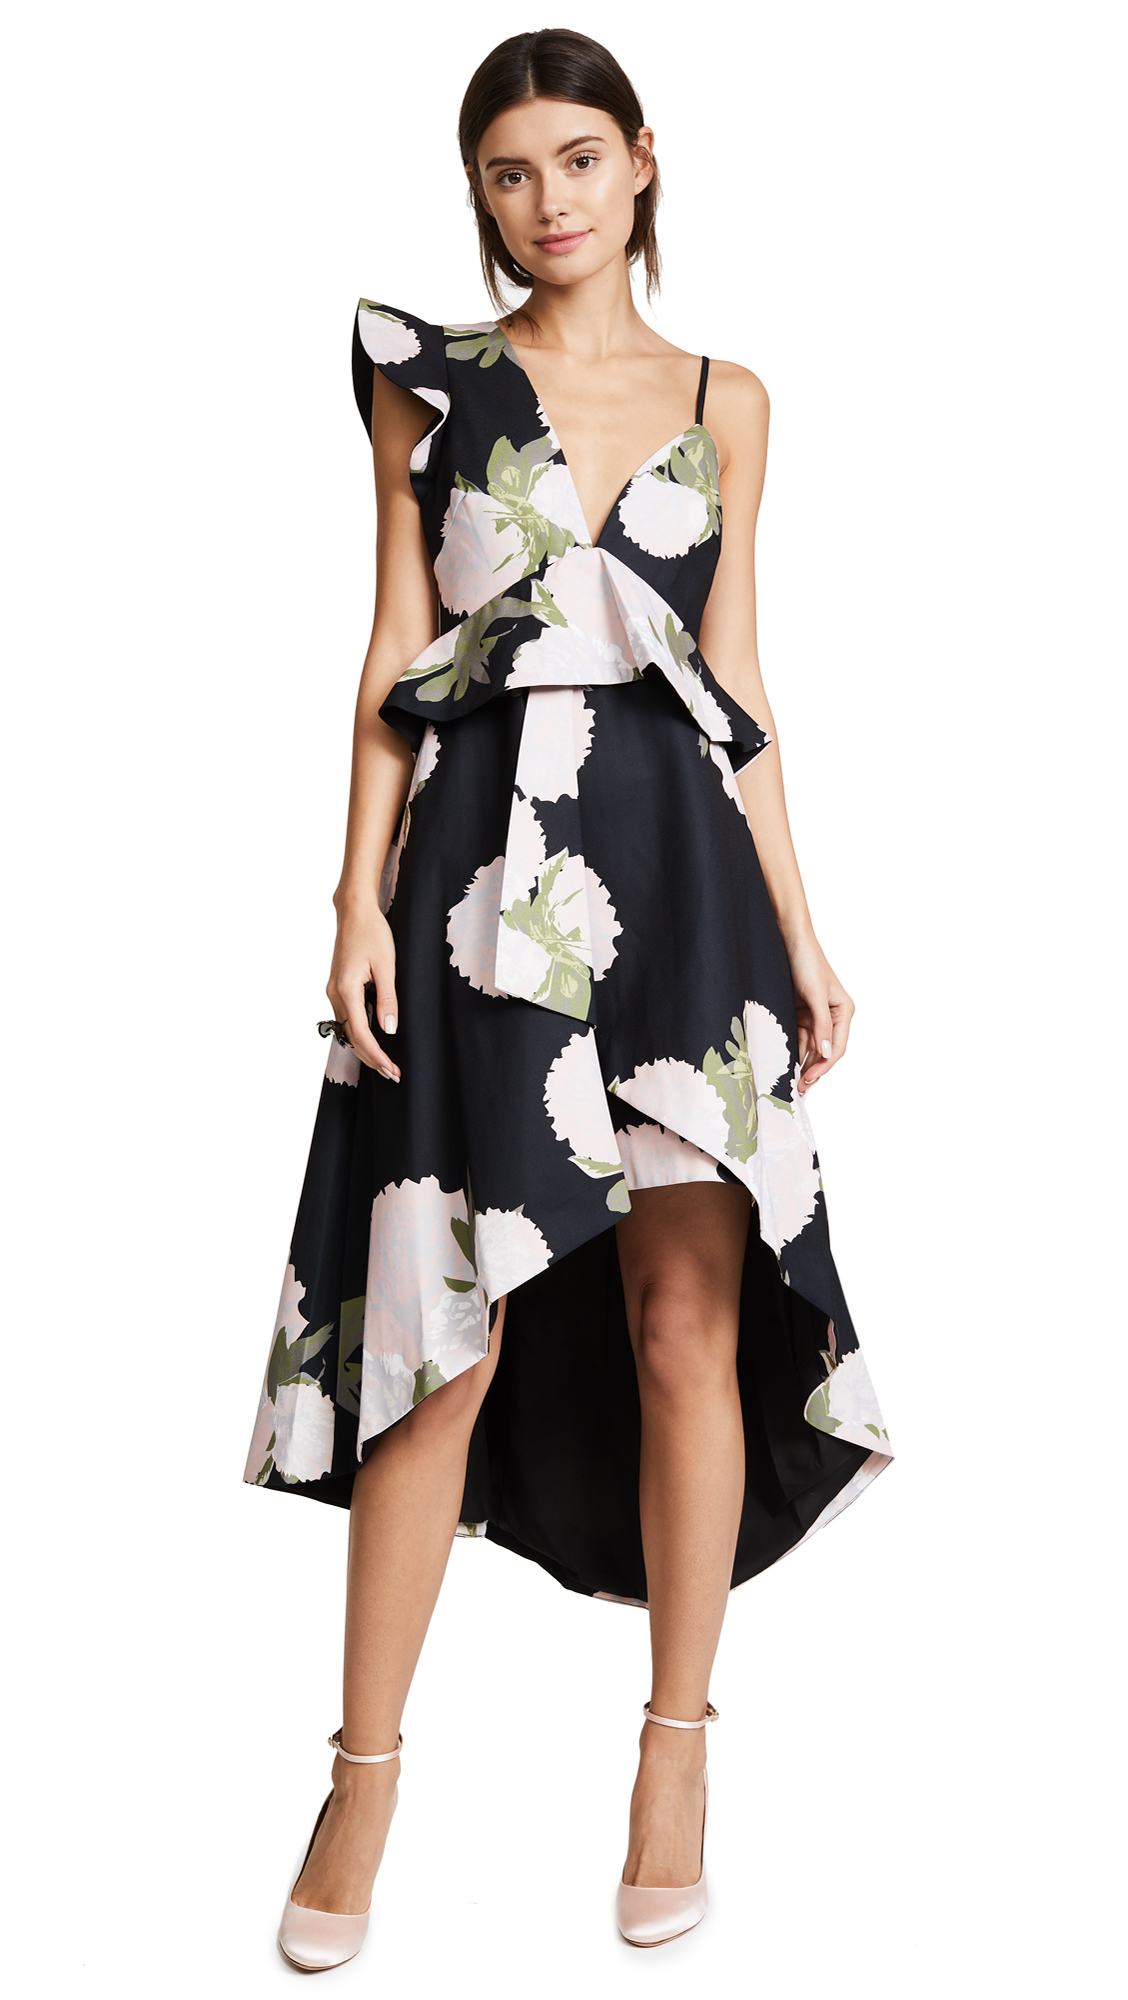 La Maison Talulah New Woman Midi Dress